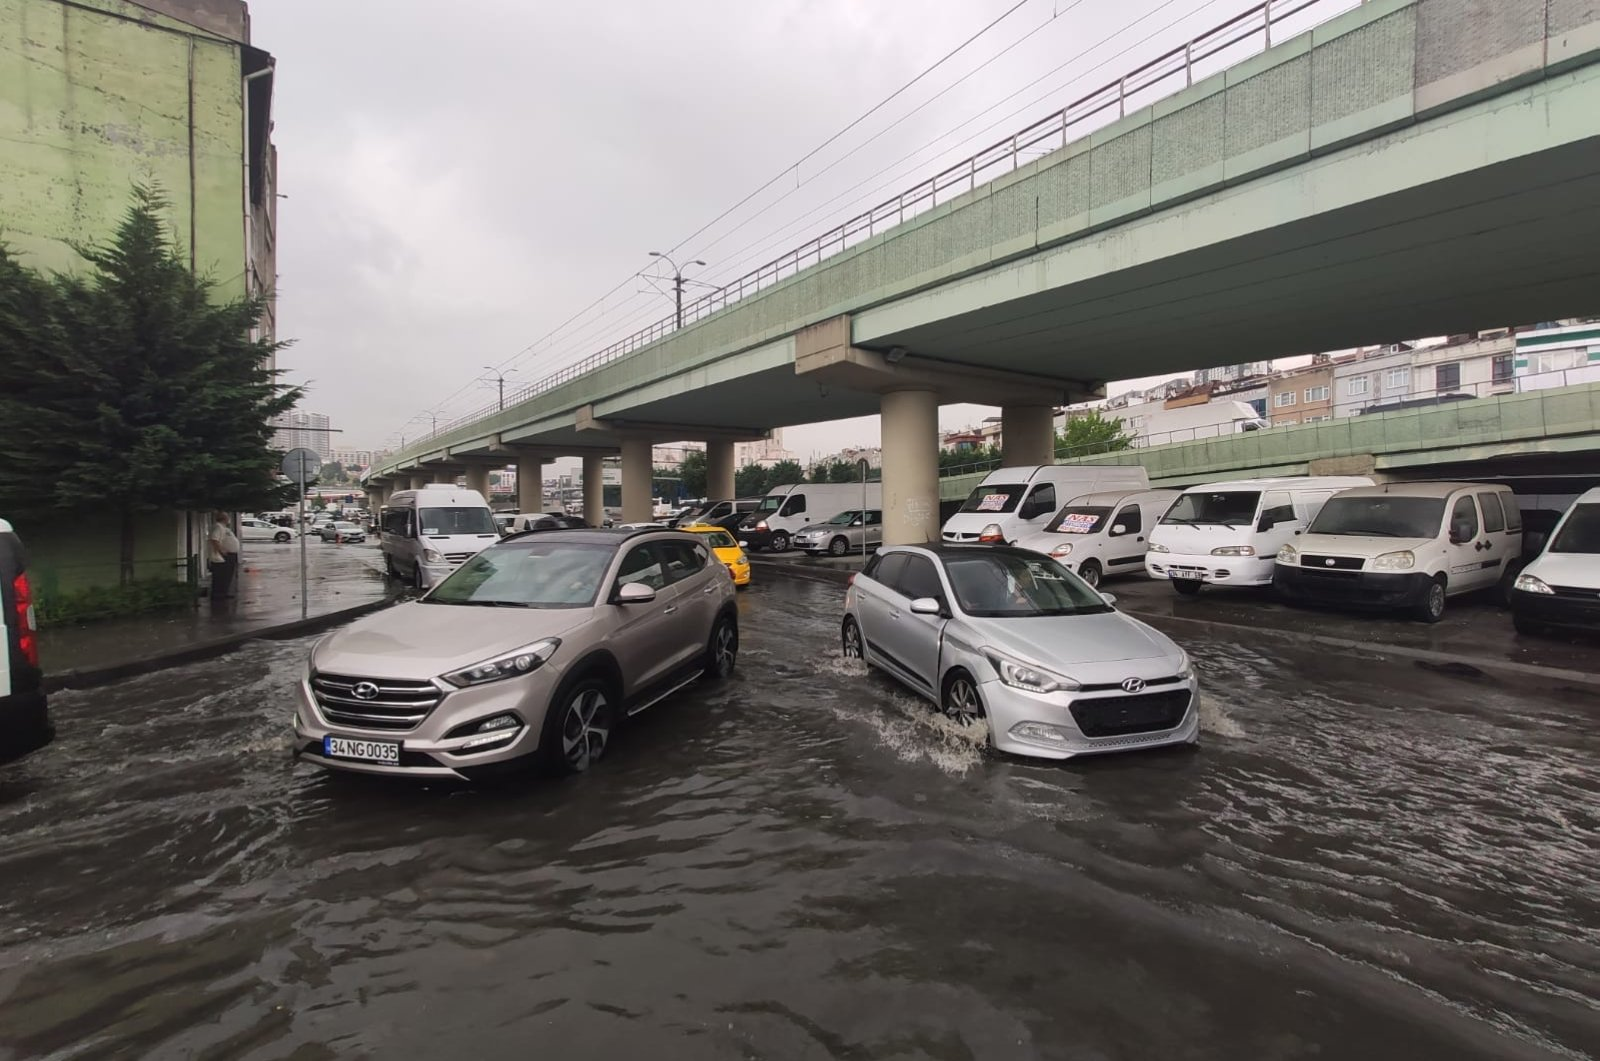 A flooded road in the Esenler district, in Istanbul, Turkey, June 18, 2020. (DHA Photo)